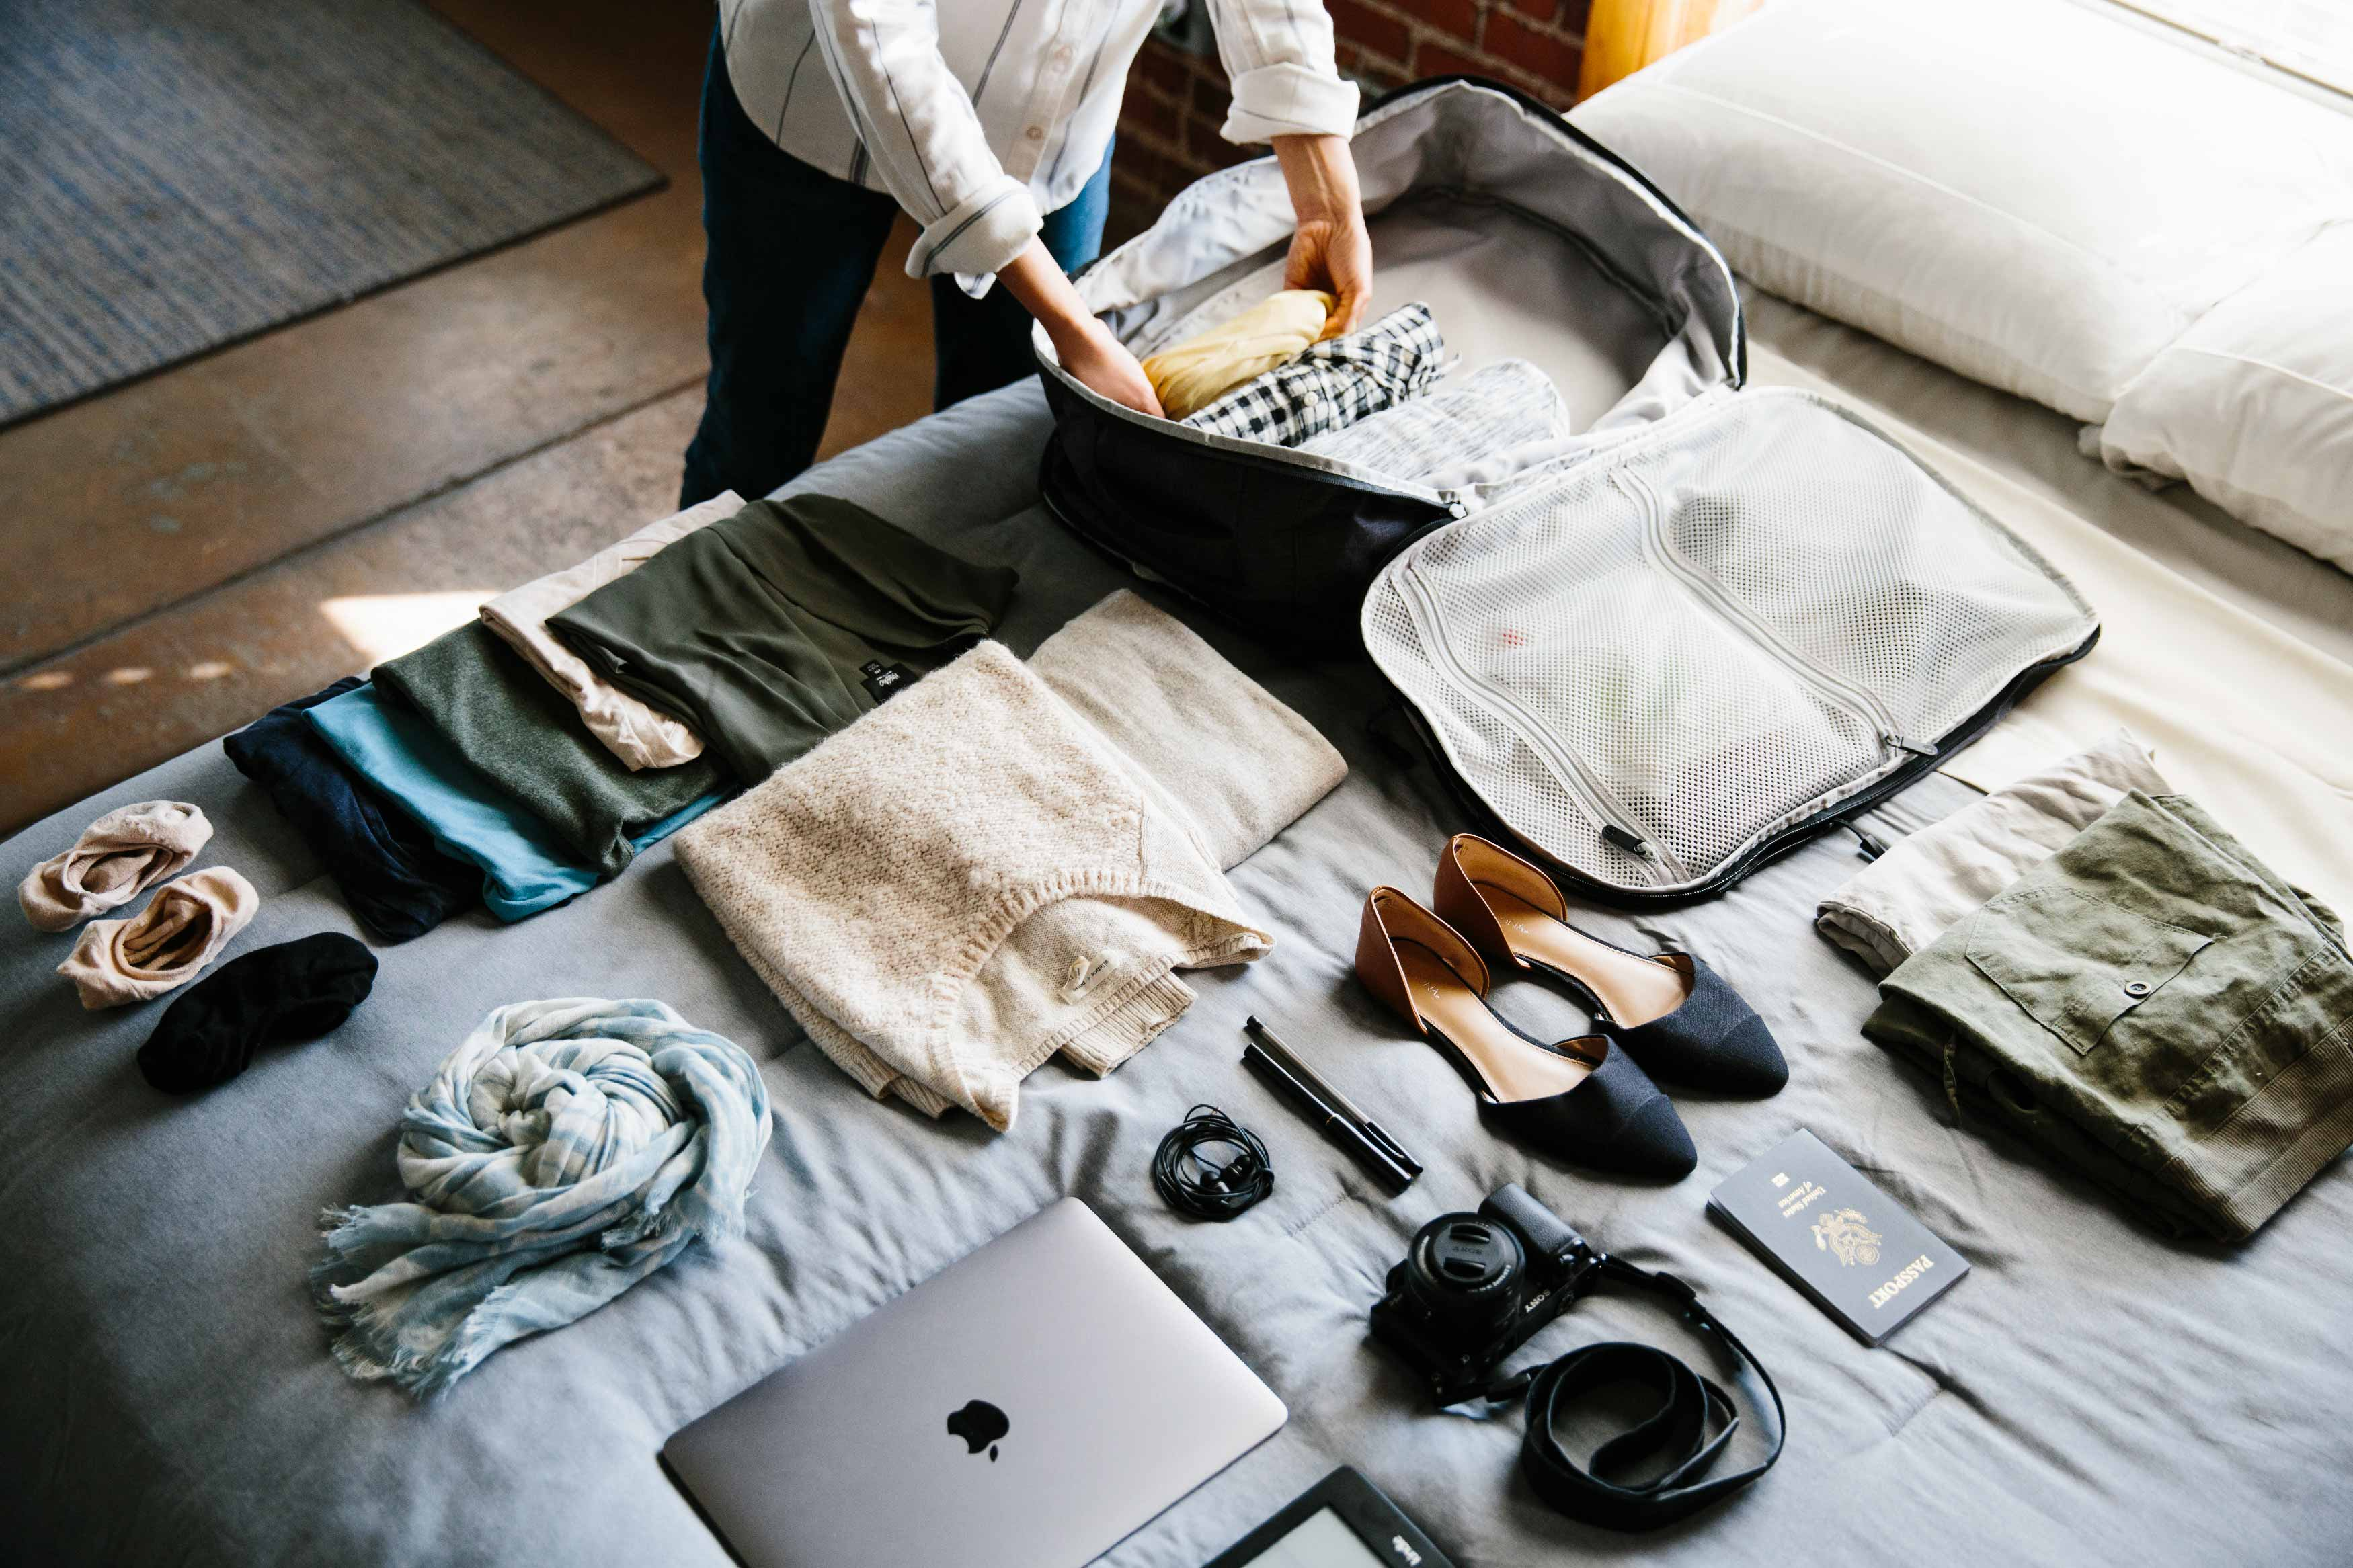 44daadd7430 Your Guide to the Best Travel Clothing   Accessories - Tortuga ...